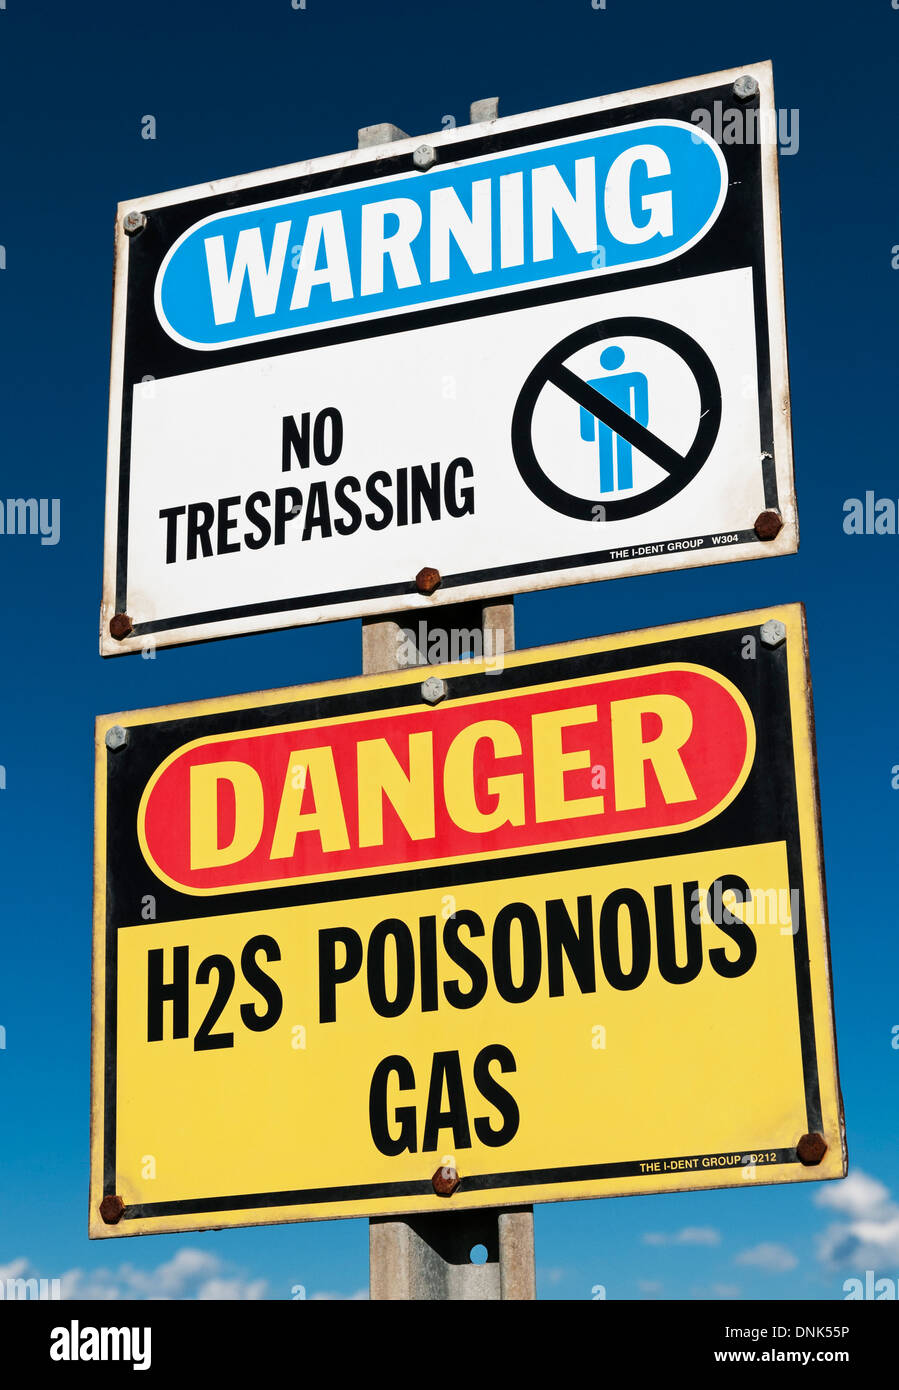 Warning signs: no trespassing and poisonous H2S ( hydrogen sulphide) gas, near Olds, Alberta, August 19, 2013. - Stock Image